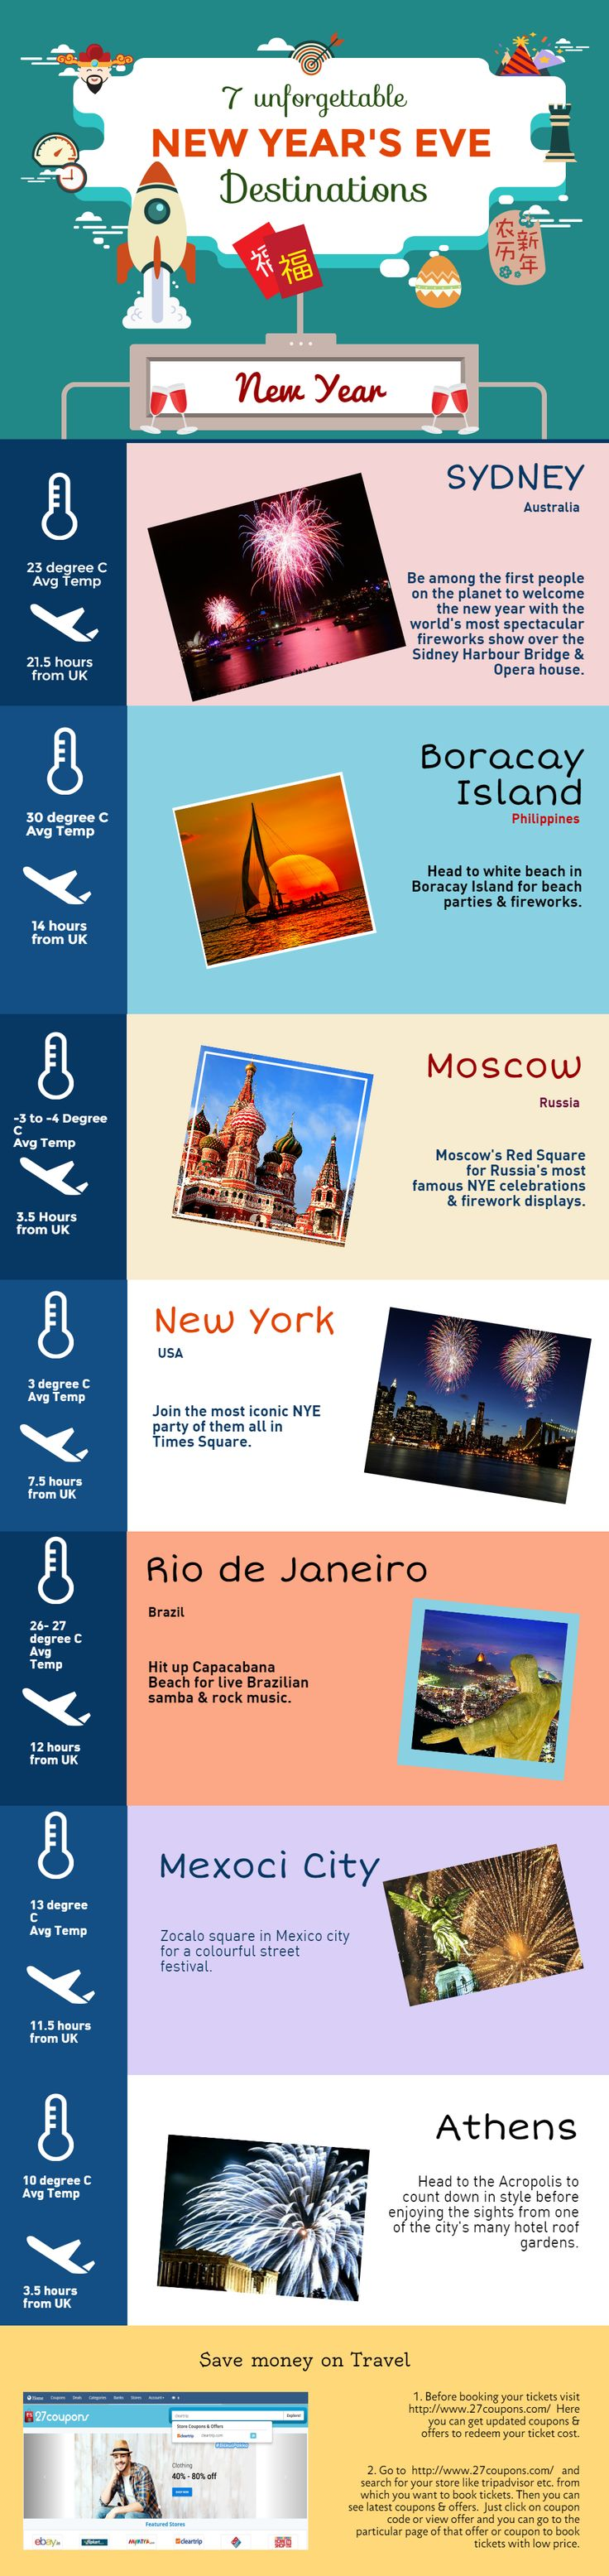 Here are top 7 destinations for new year.